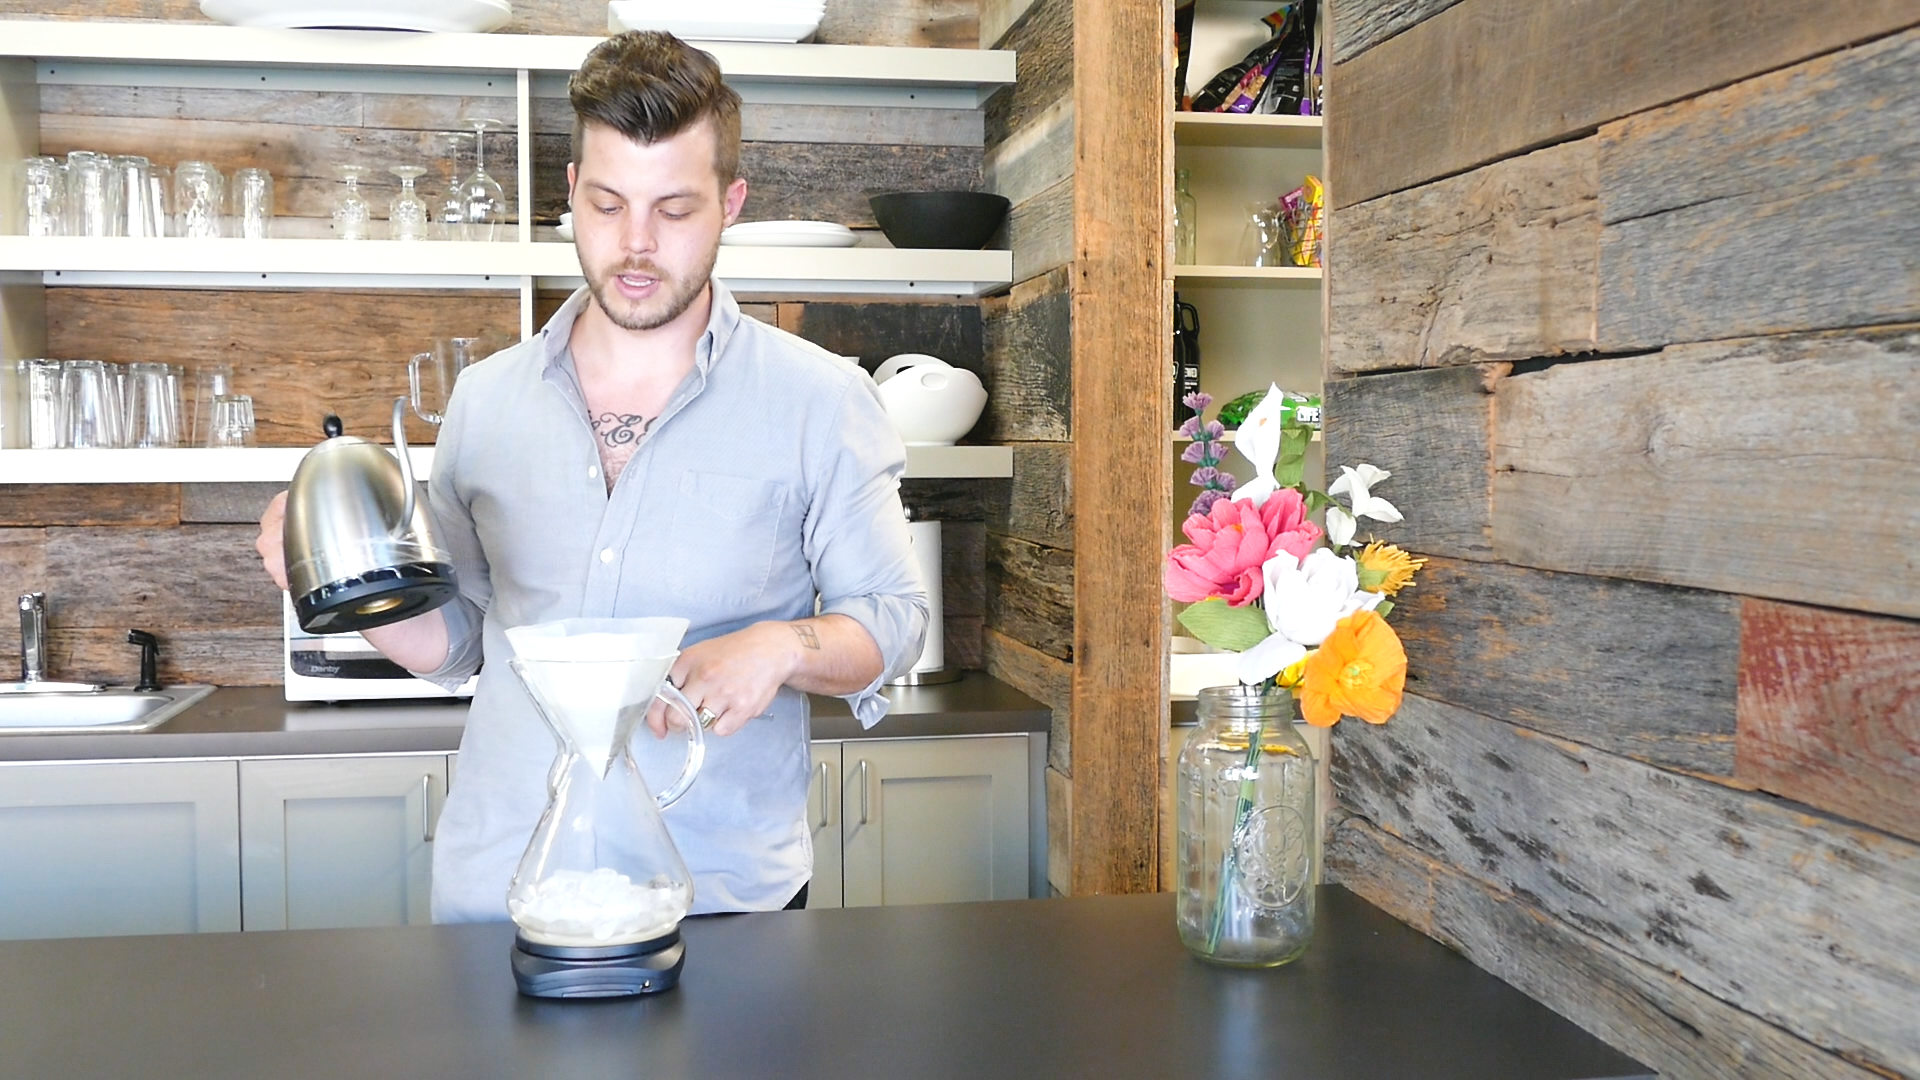 How To Make Flash-Chilled Iced Coffee In 6 Easy Steps